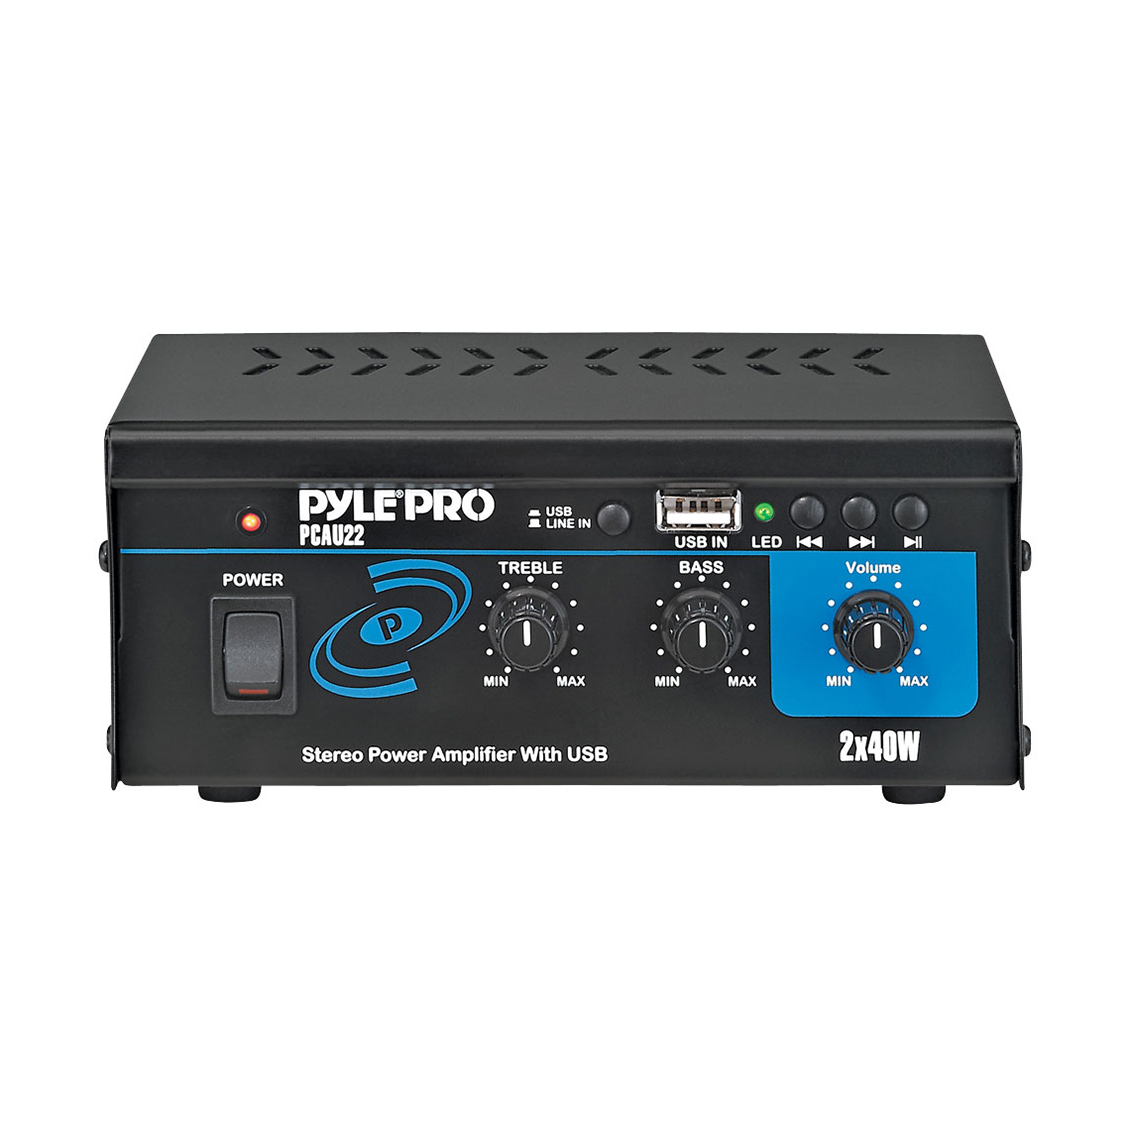 Pyle PCAU22 Amplifier - 40 W RMS - 2 Channel - 10% THD - USB